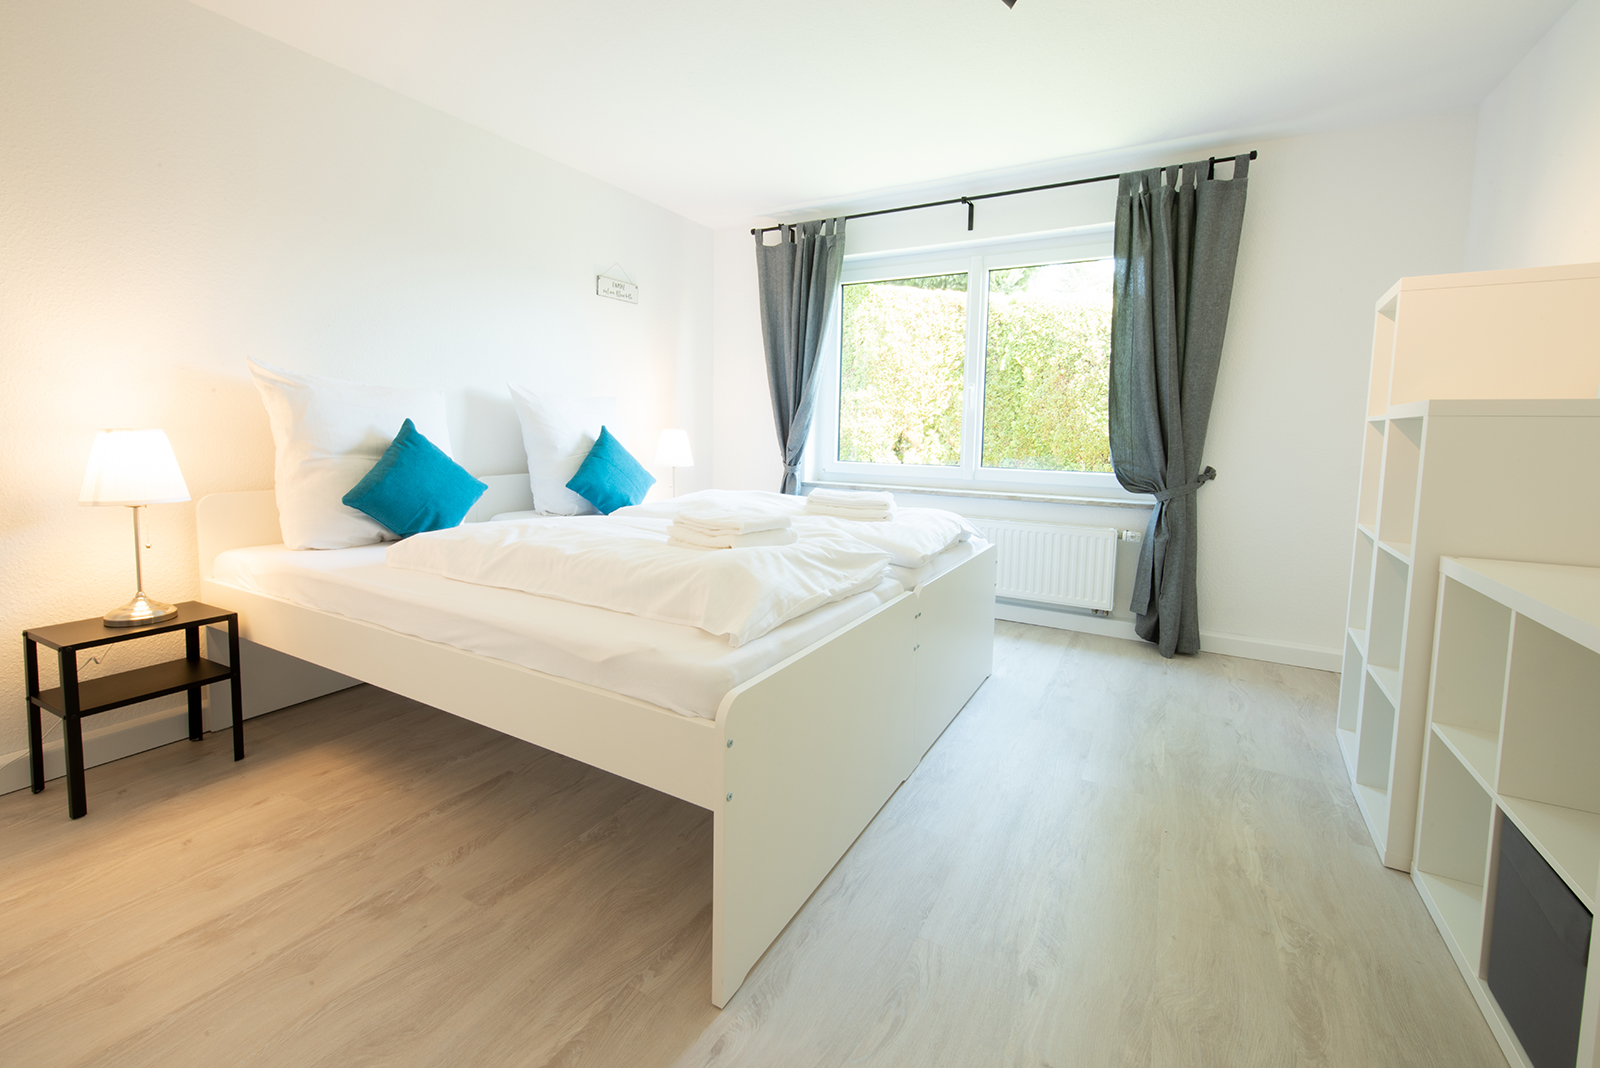 Holiday apartments on Lake Constance: Markdorf - Bedroom 2